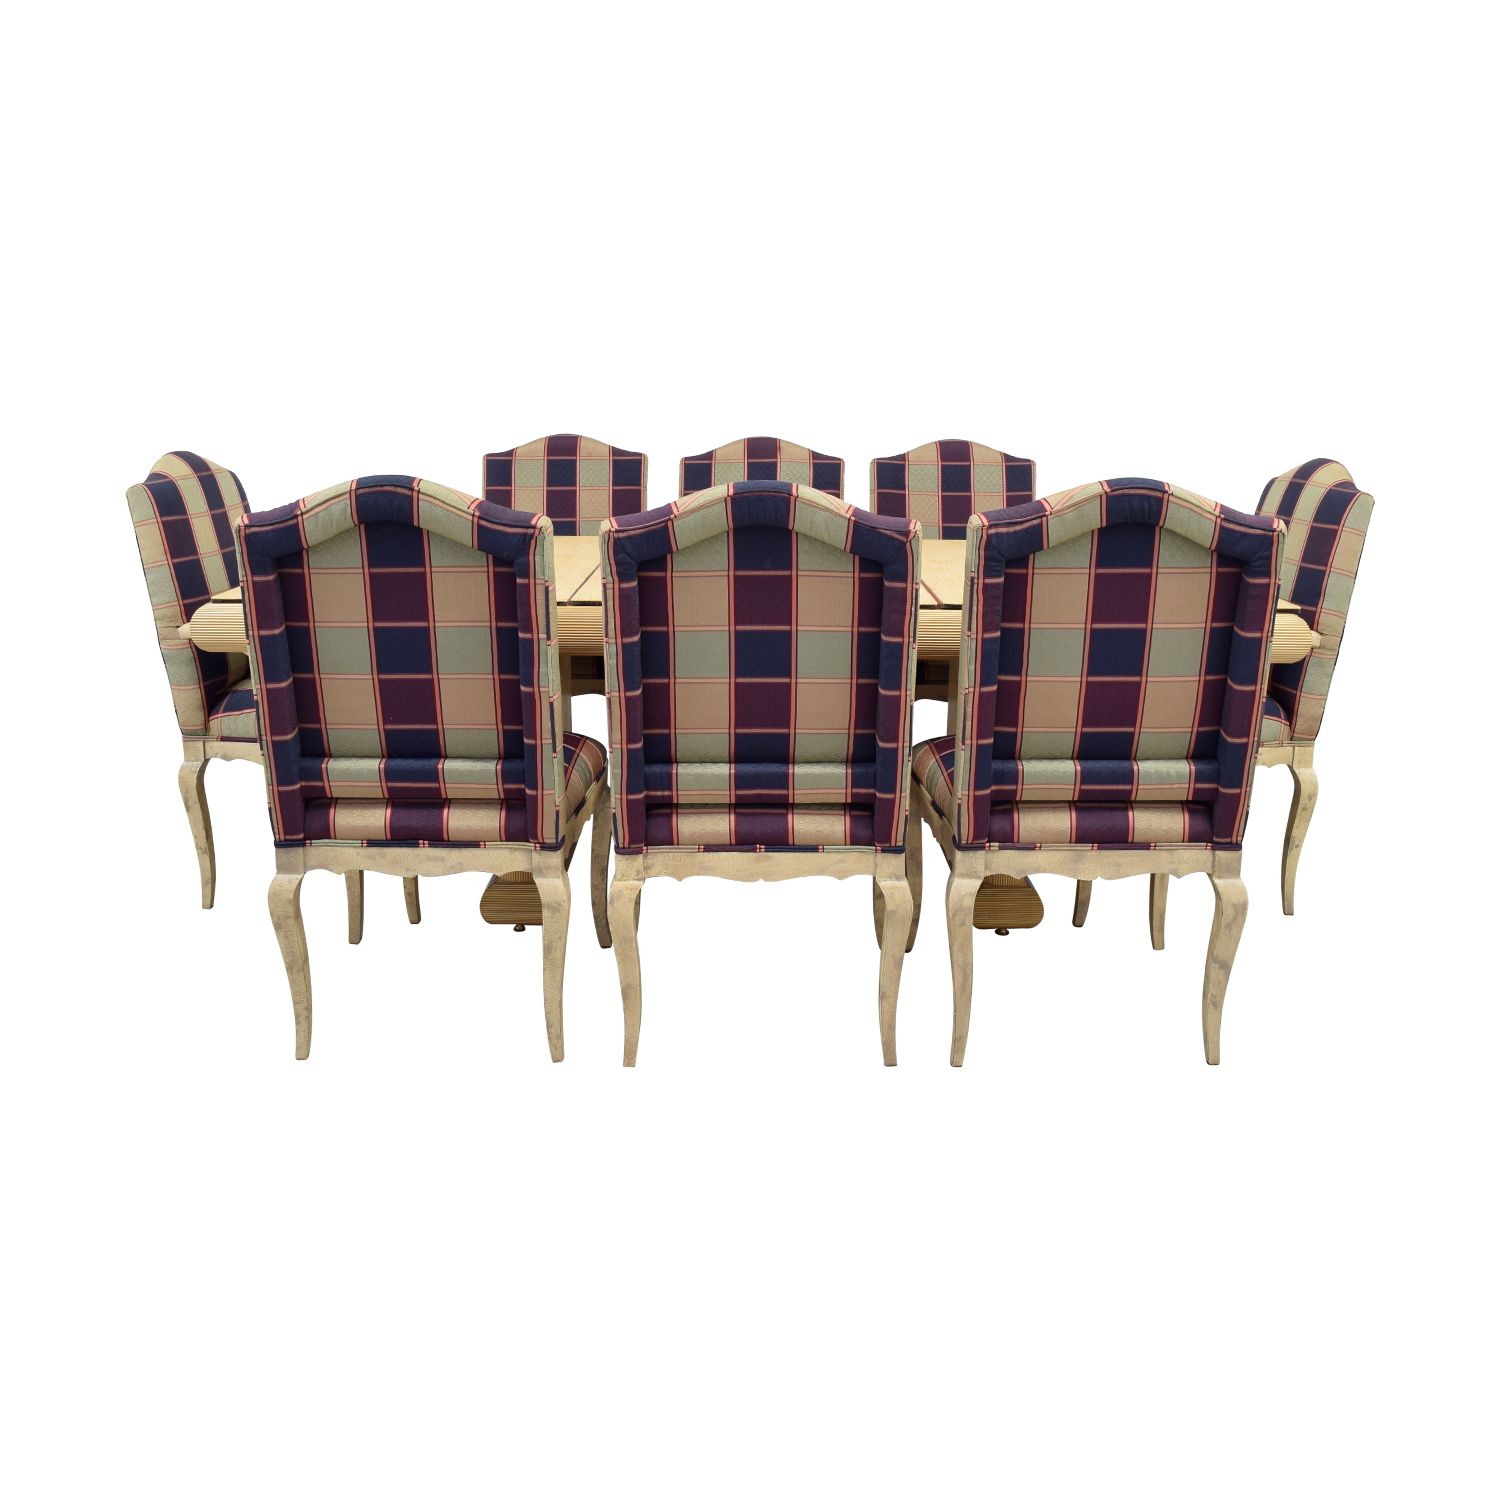 shop Custom Dining Set with Plaid Chairs  Dining Sets